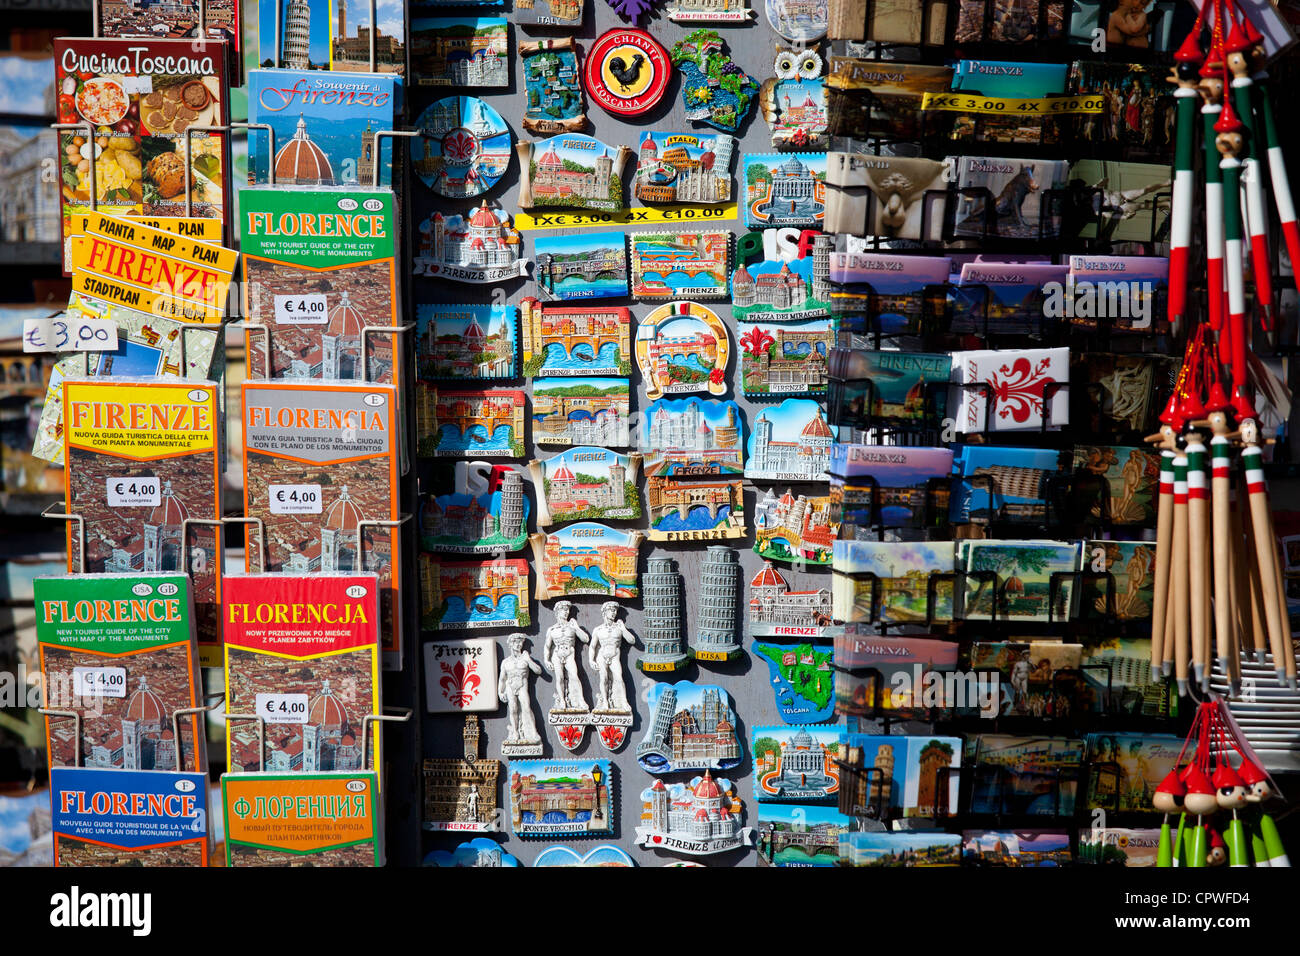 Cucina Toscana Via Faenza Souvenir Shop In Florence Stock Photos Souvenir Shop In Florence